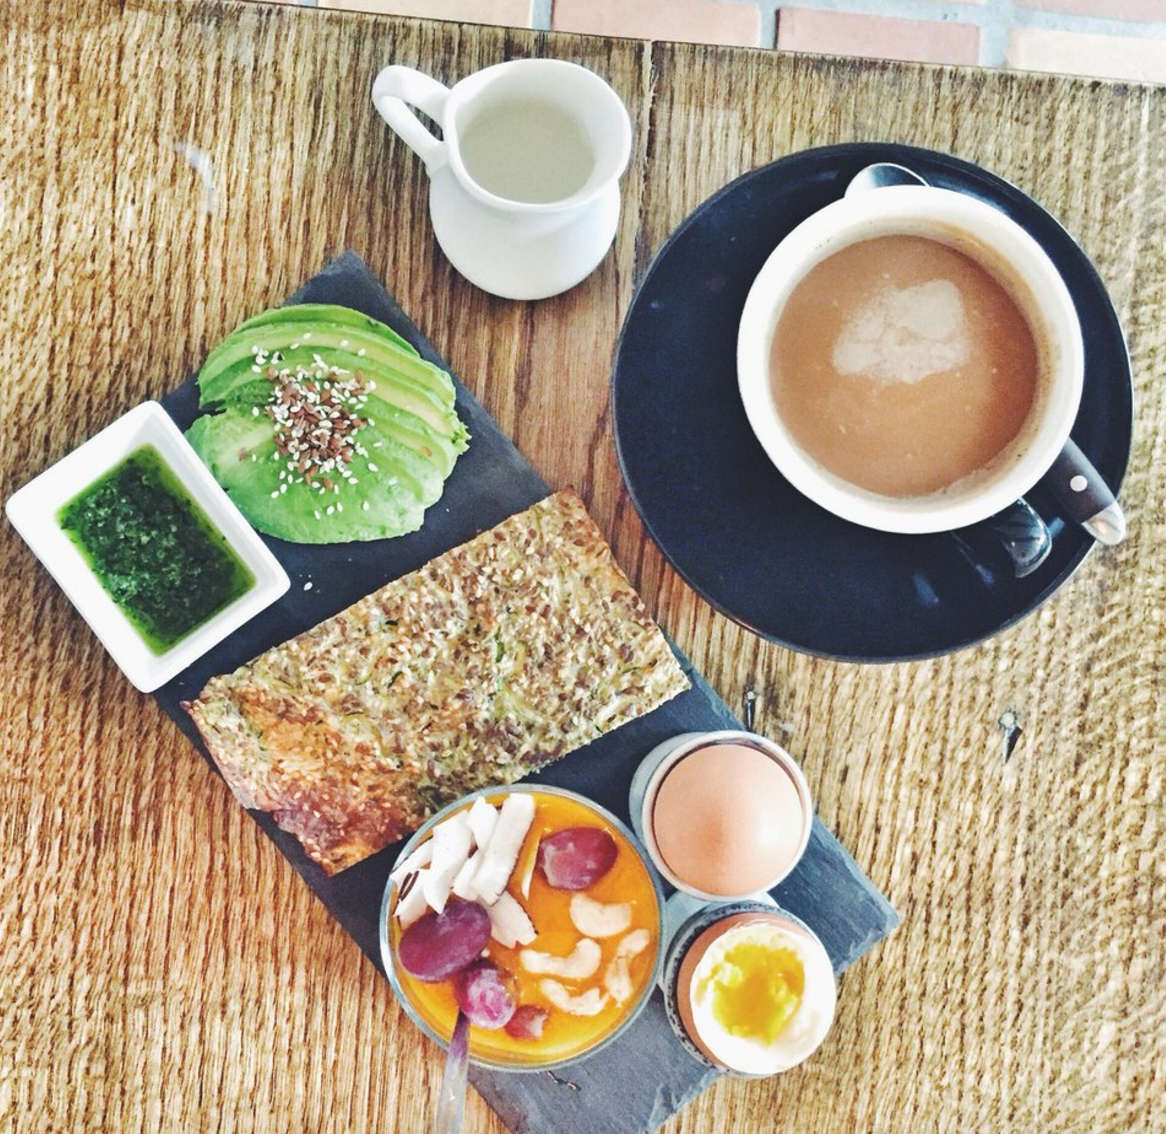 Breakfast at Social, Nørrebro, København. Zucchini bread, avocado, chia pudding with mango, pesto, coffee.